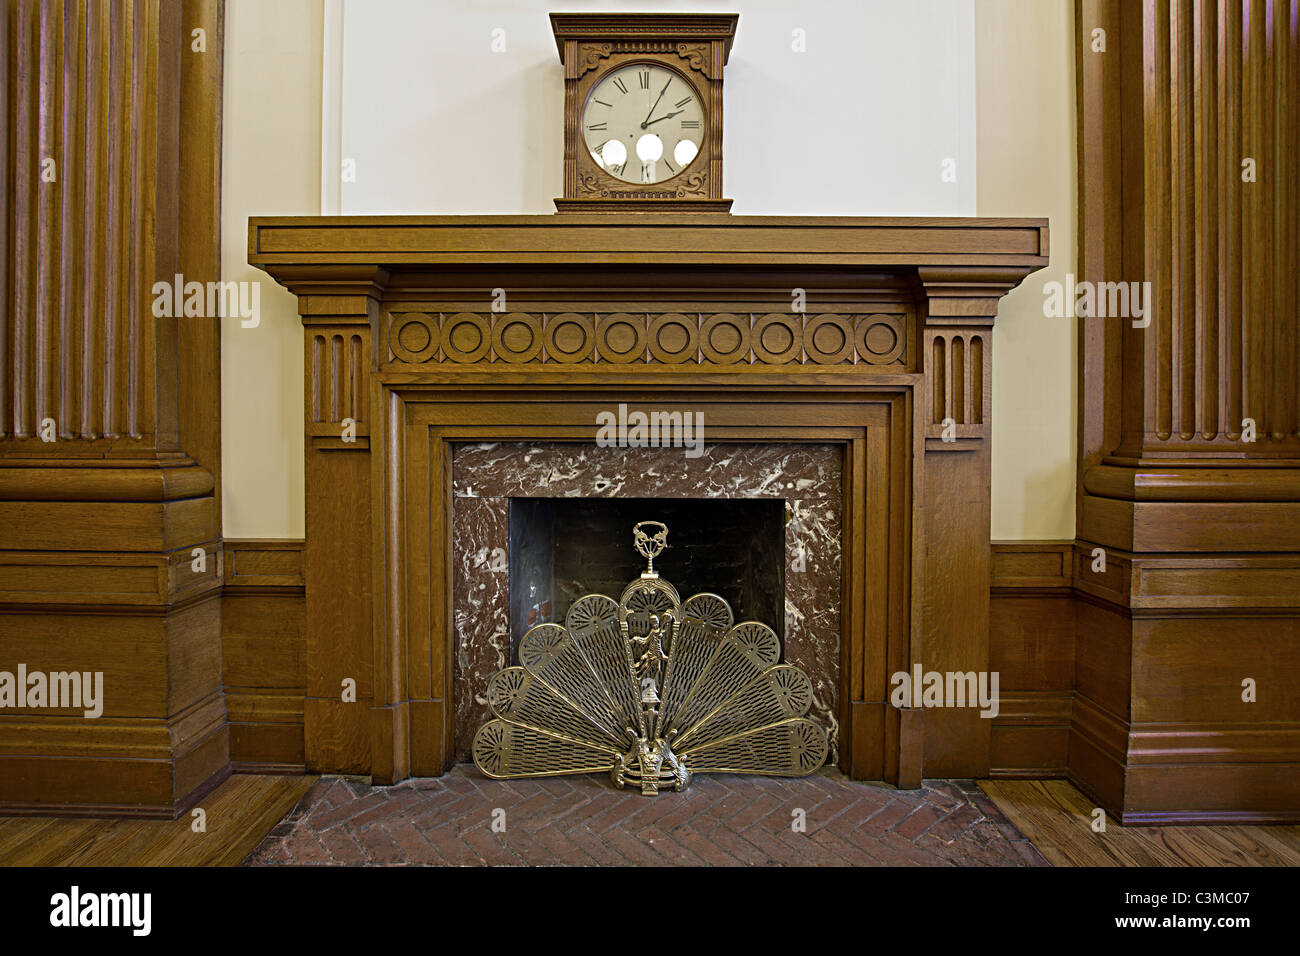 Antique Fireplace in Historic Courthouse Building Portland Oregon - Stock Image